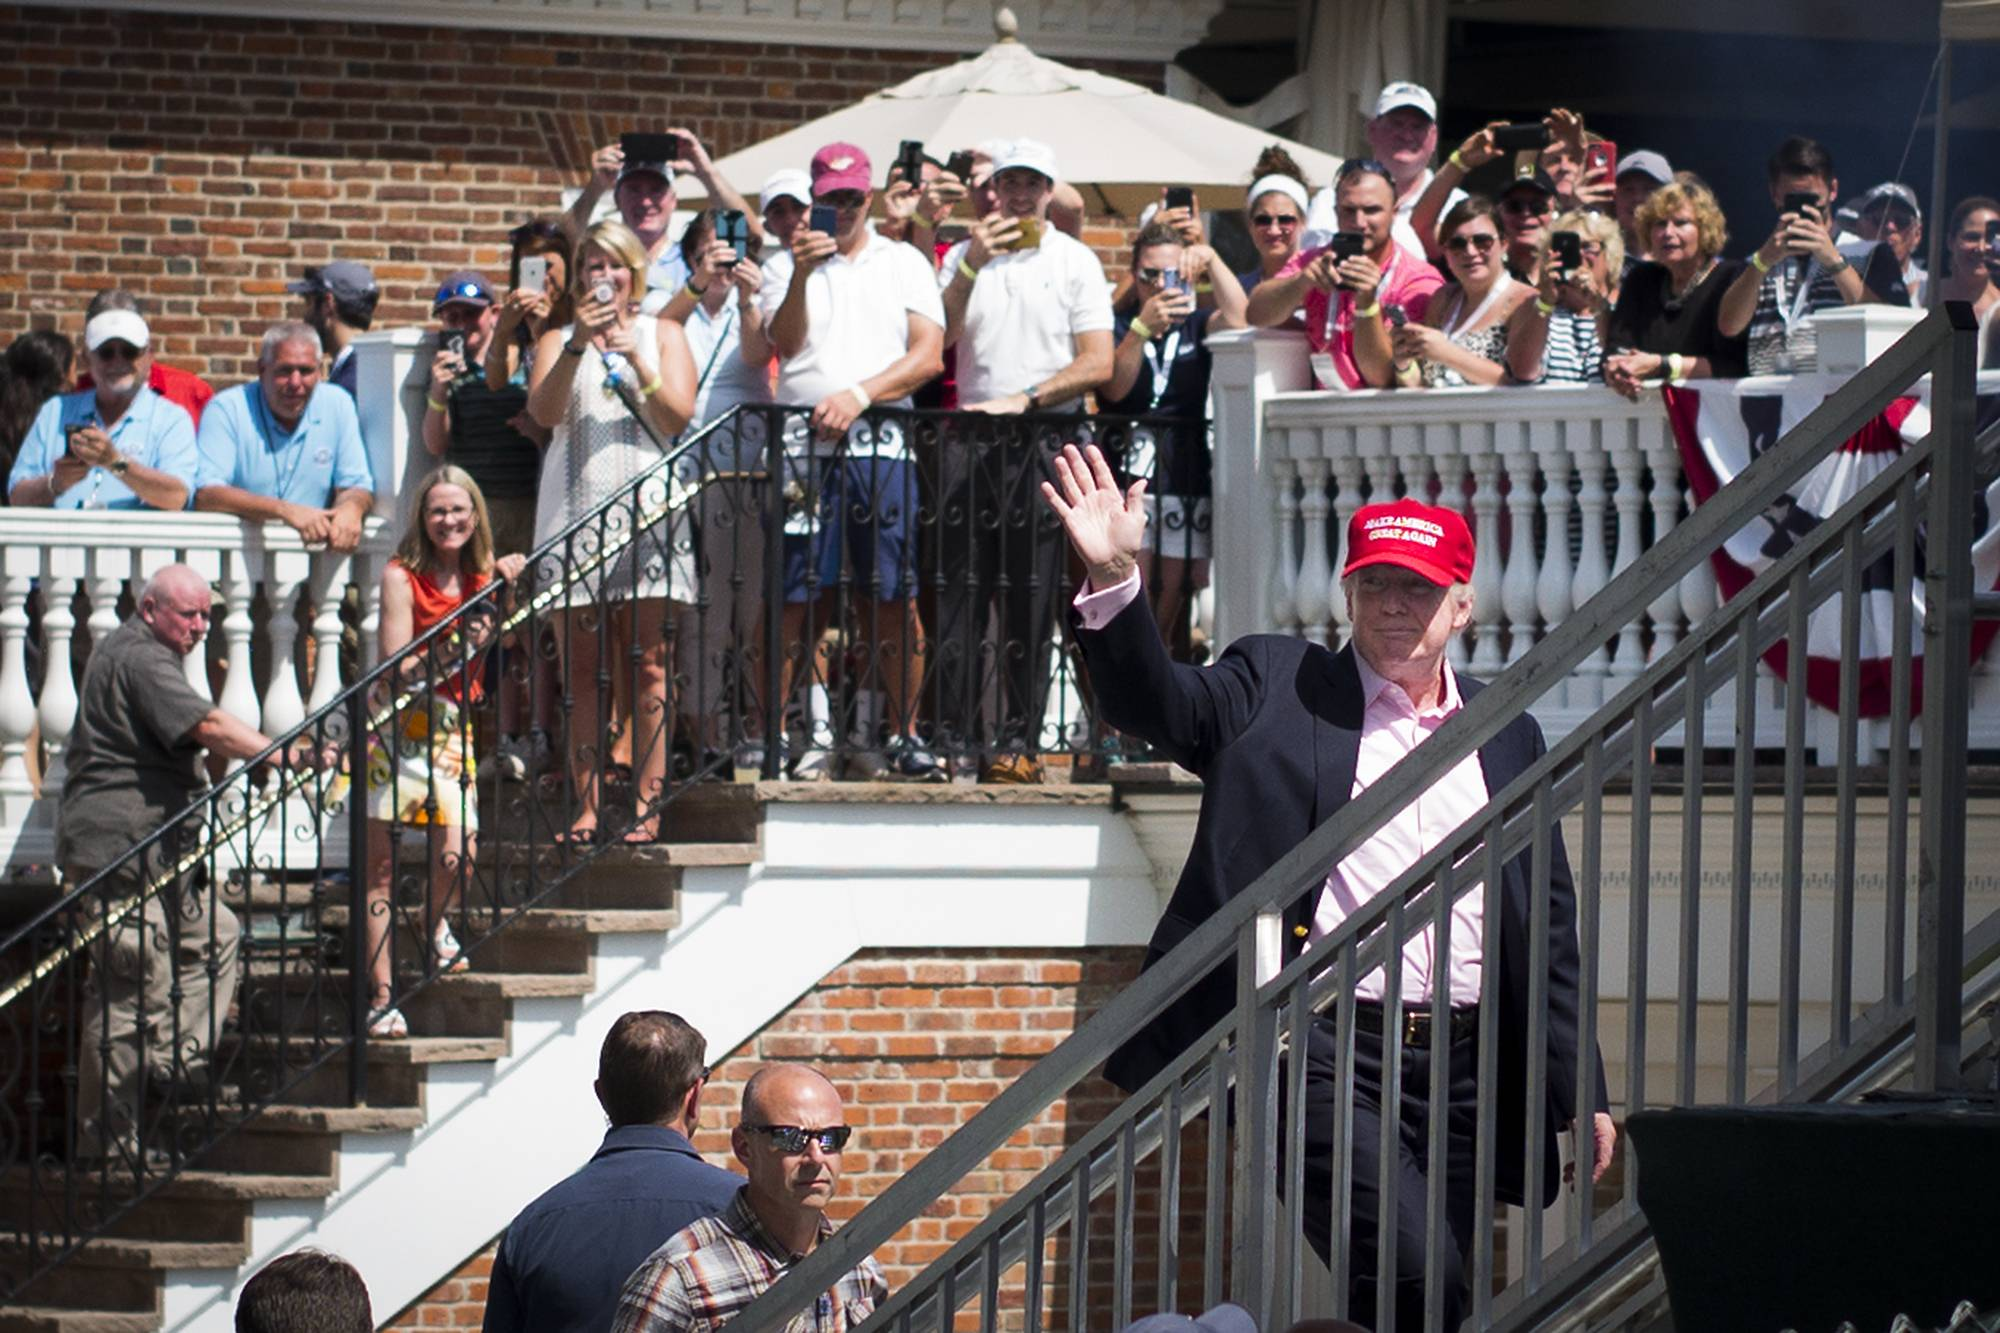 U.S. President Donald Trump waves to the crowd during the final round of the U.S. Women's Open at Trump National Golf Club in Bedminster, New Jersey, on July 16, 2017. | USA TODAY / VIA REUTERS